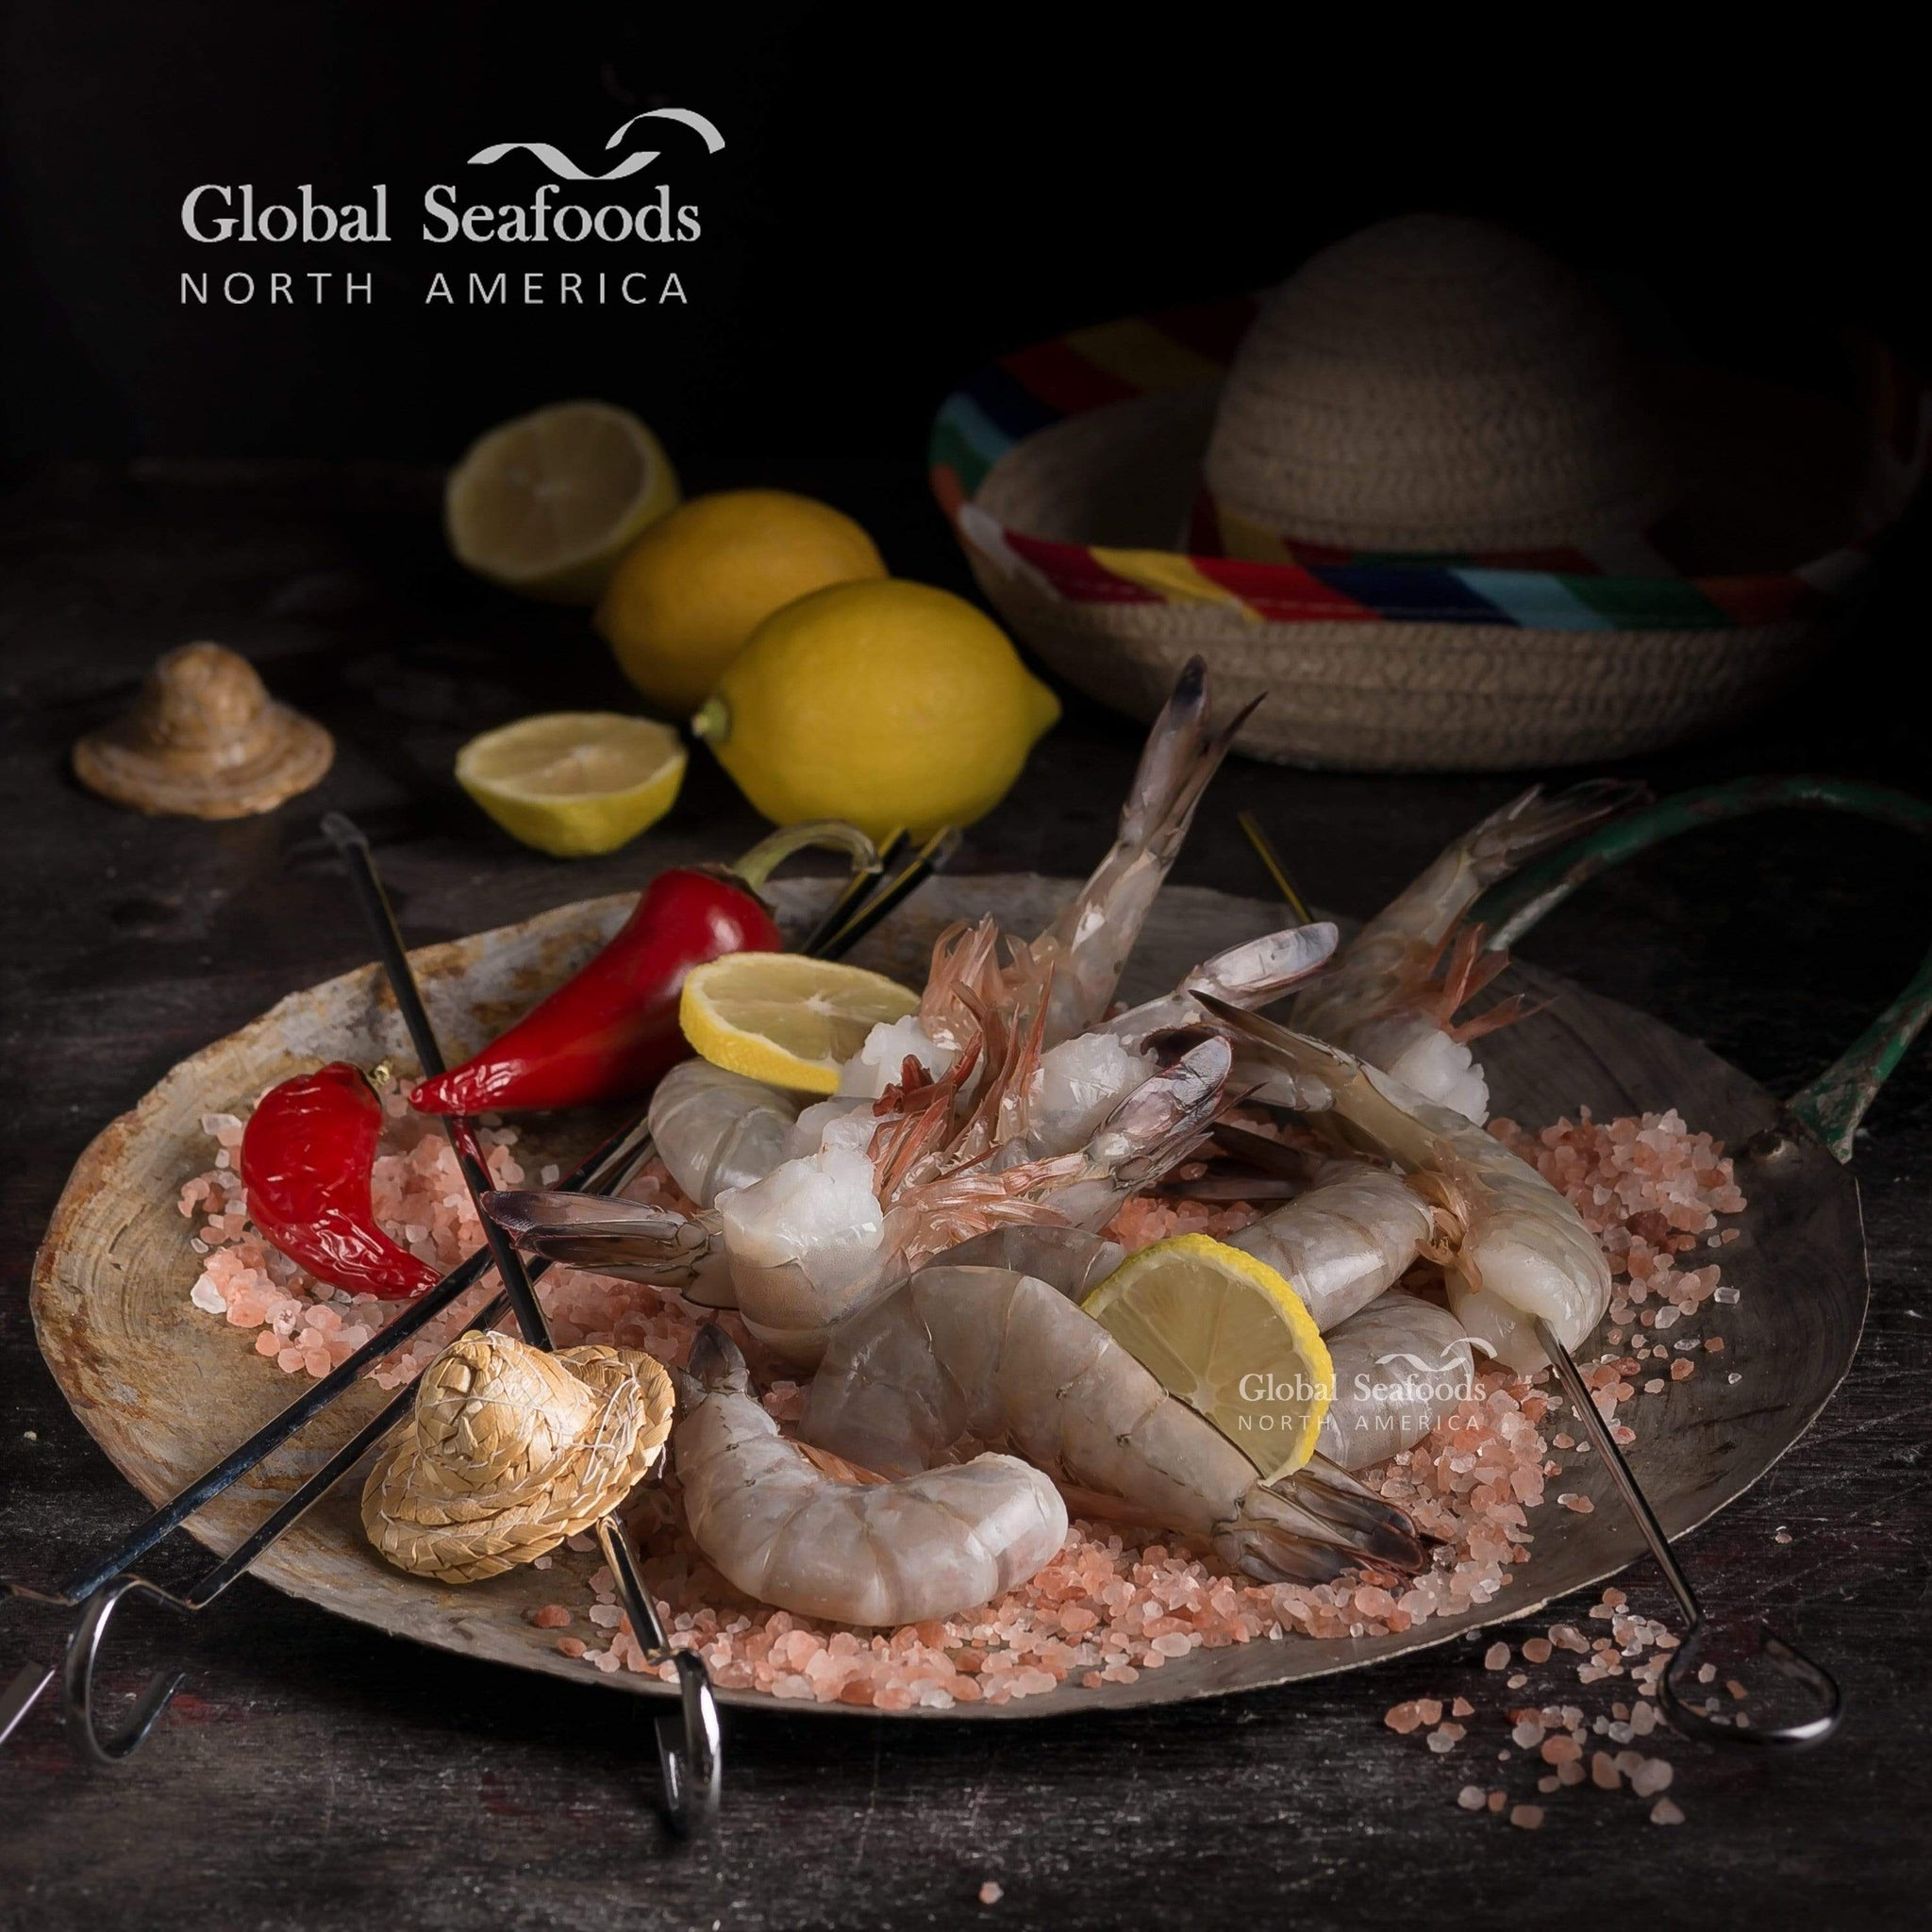 Global Seafoods North America Wild Mexican Jumbo Shrimps